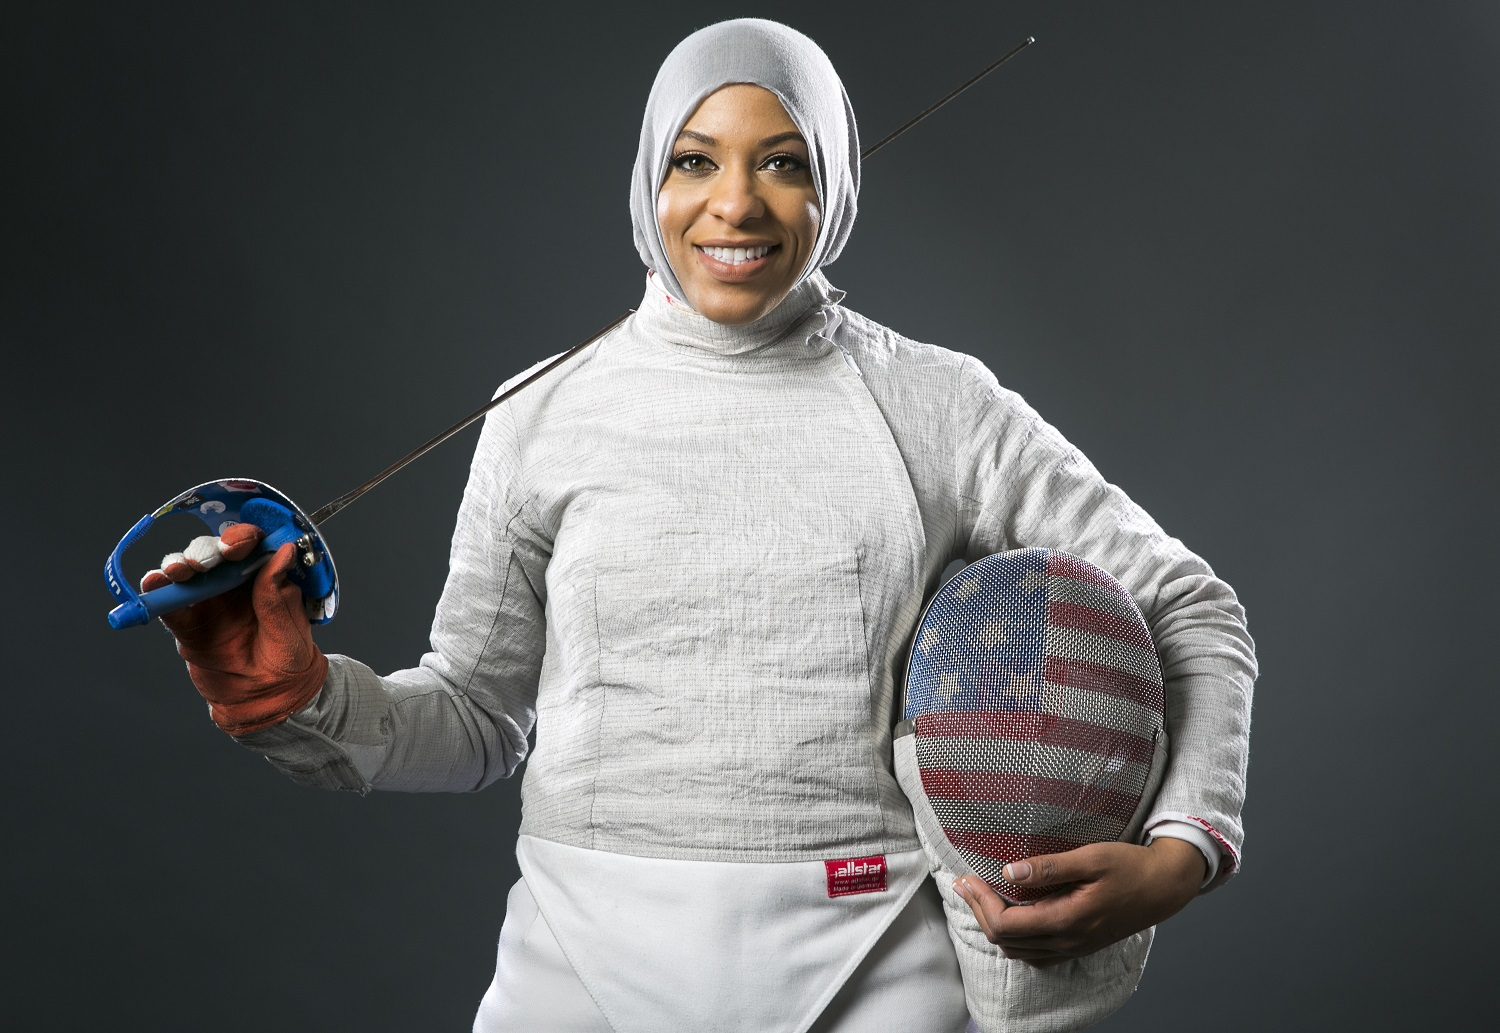 Fencer Ibtihaj Muhammad poses for photos at the 2016 Team USA Media Summit Wednesday, March 9, 2016, in Beverly Hills, Calif. (AP Photo/Damian Dovarganes)